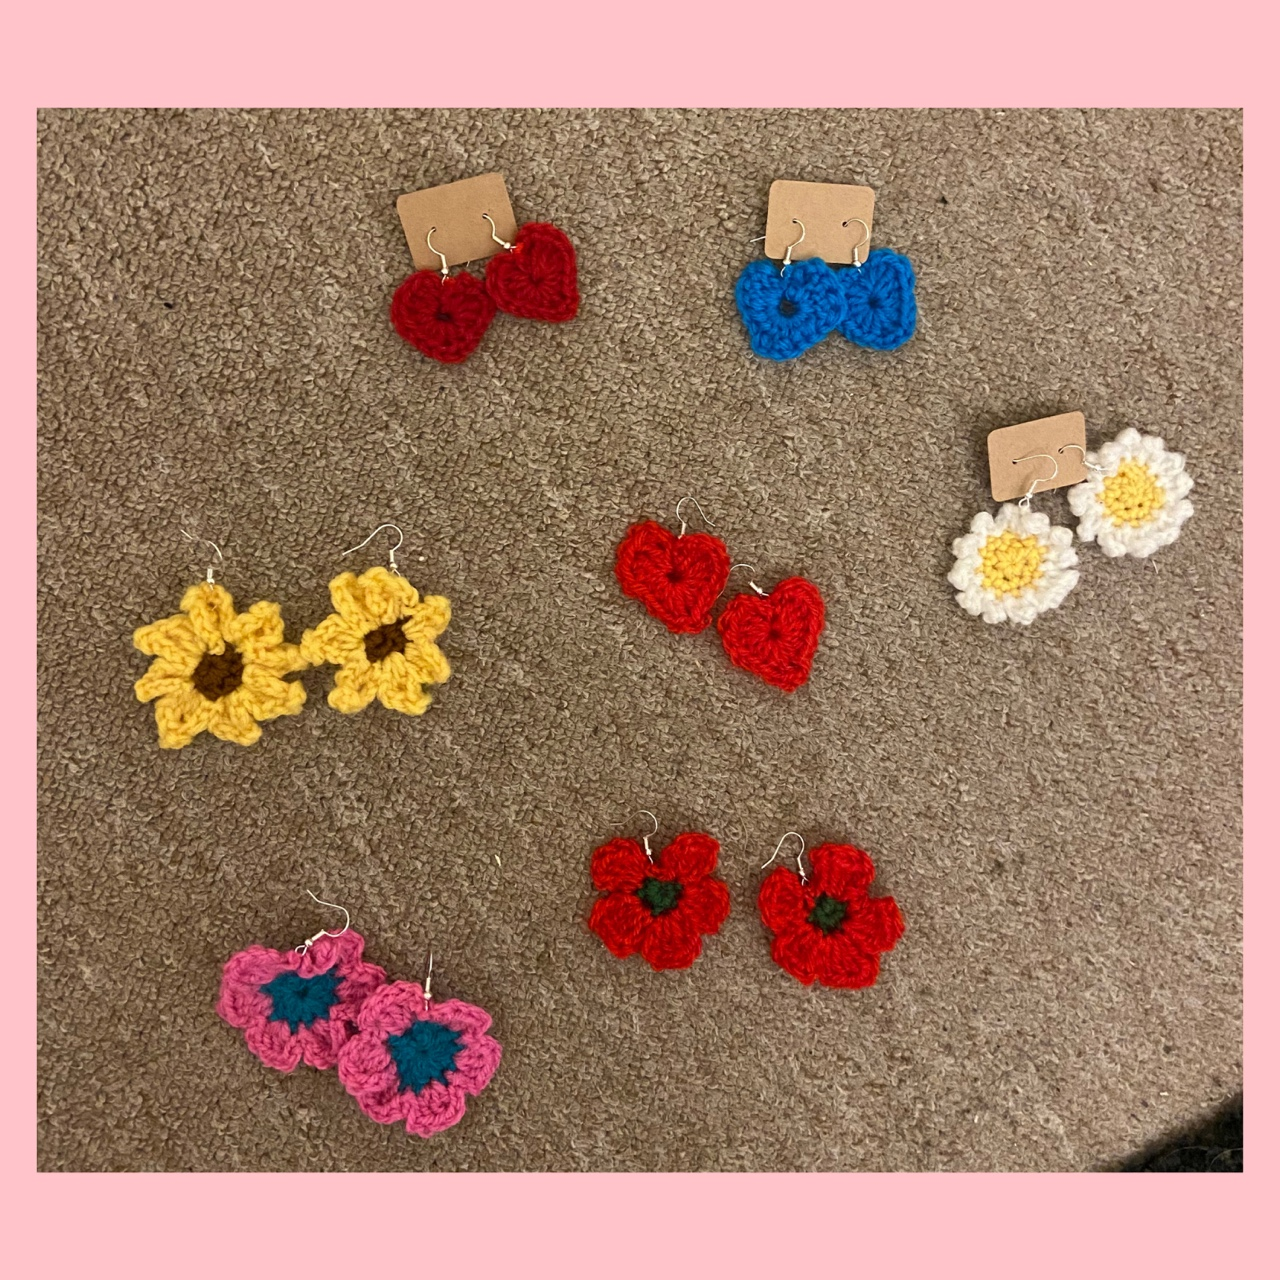 Product Image 1 - Crochet earrings✨🌼🌻🌸🌺 (special offer -